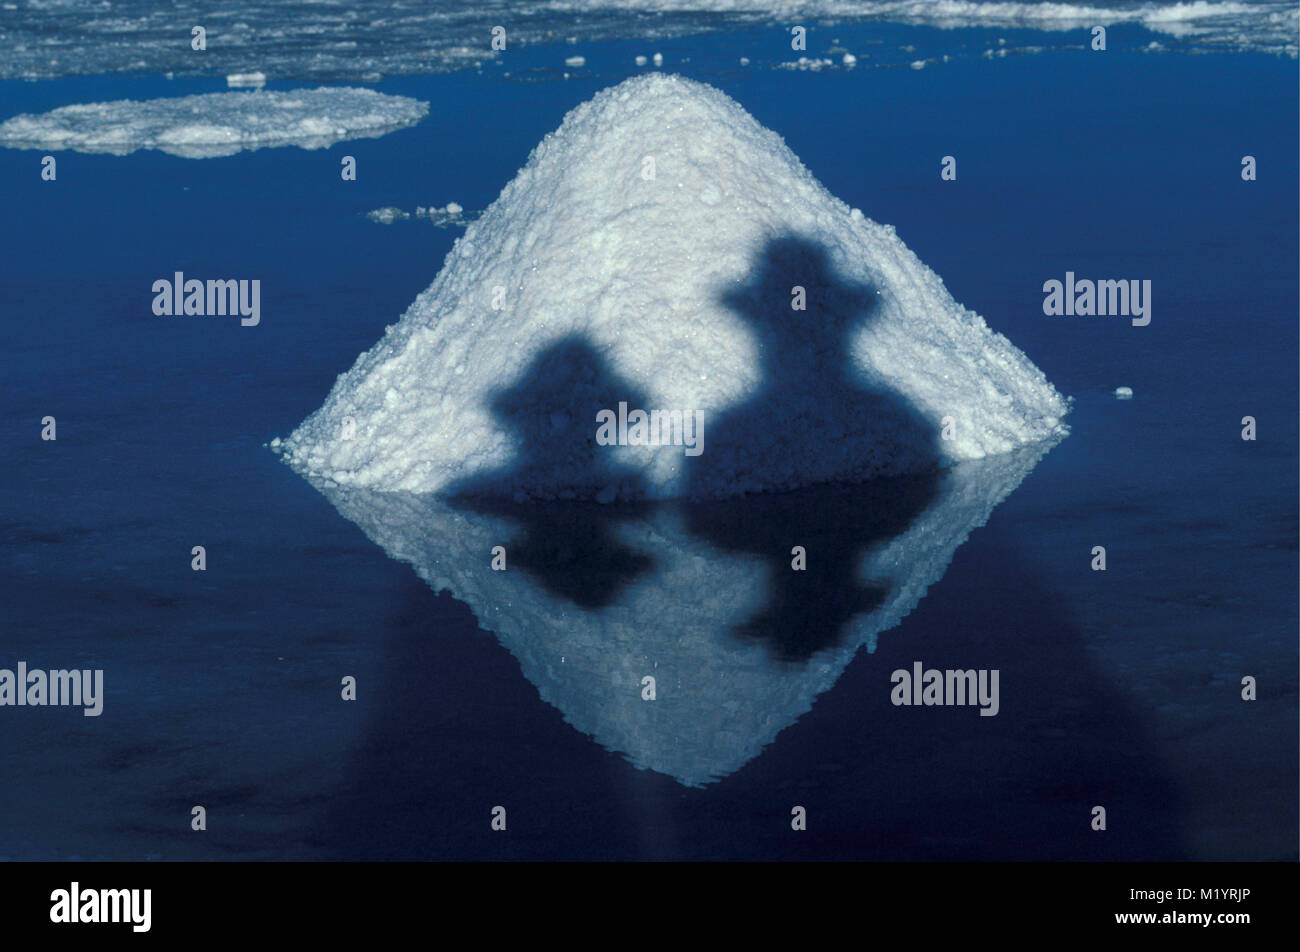 Bolivia. Uyuni. Salar de Uyuni. Salt industry in Uyuni salt lake. Salt harvesting.  Shadow of people with hat. Reflection. - Stock Image